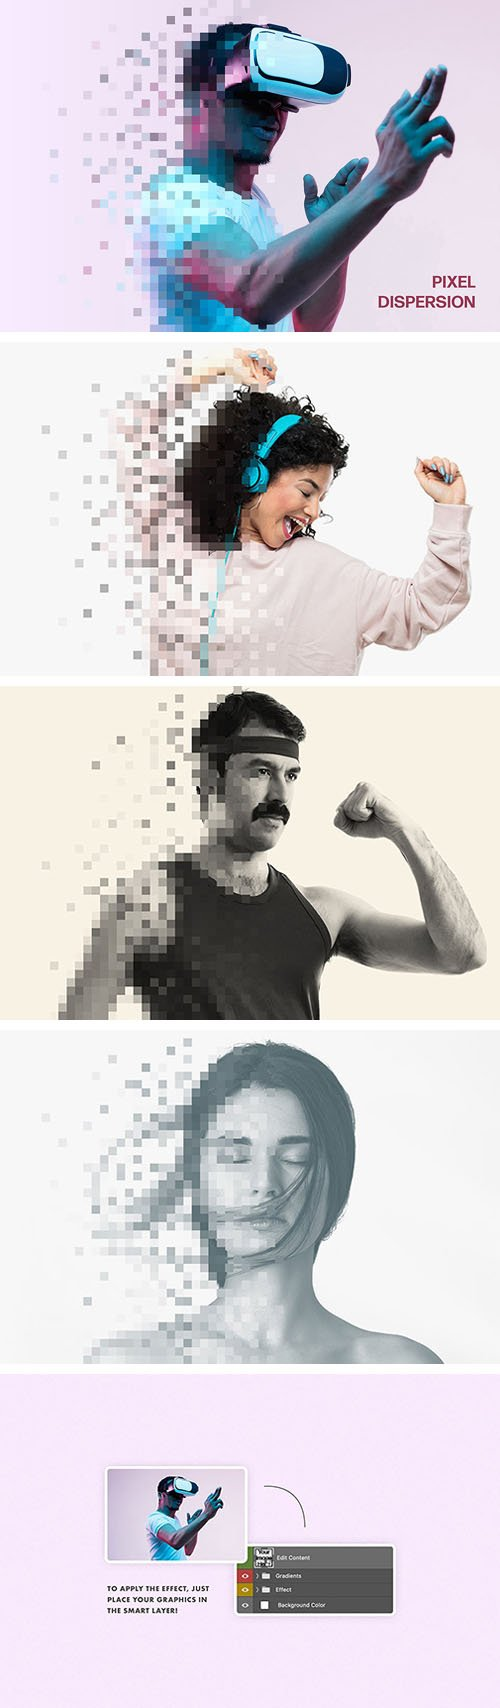 Pixel Dispersion Photo Effect PSD Template